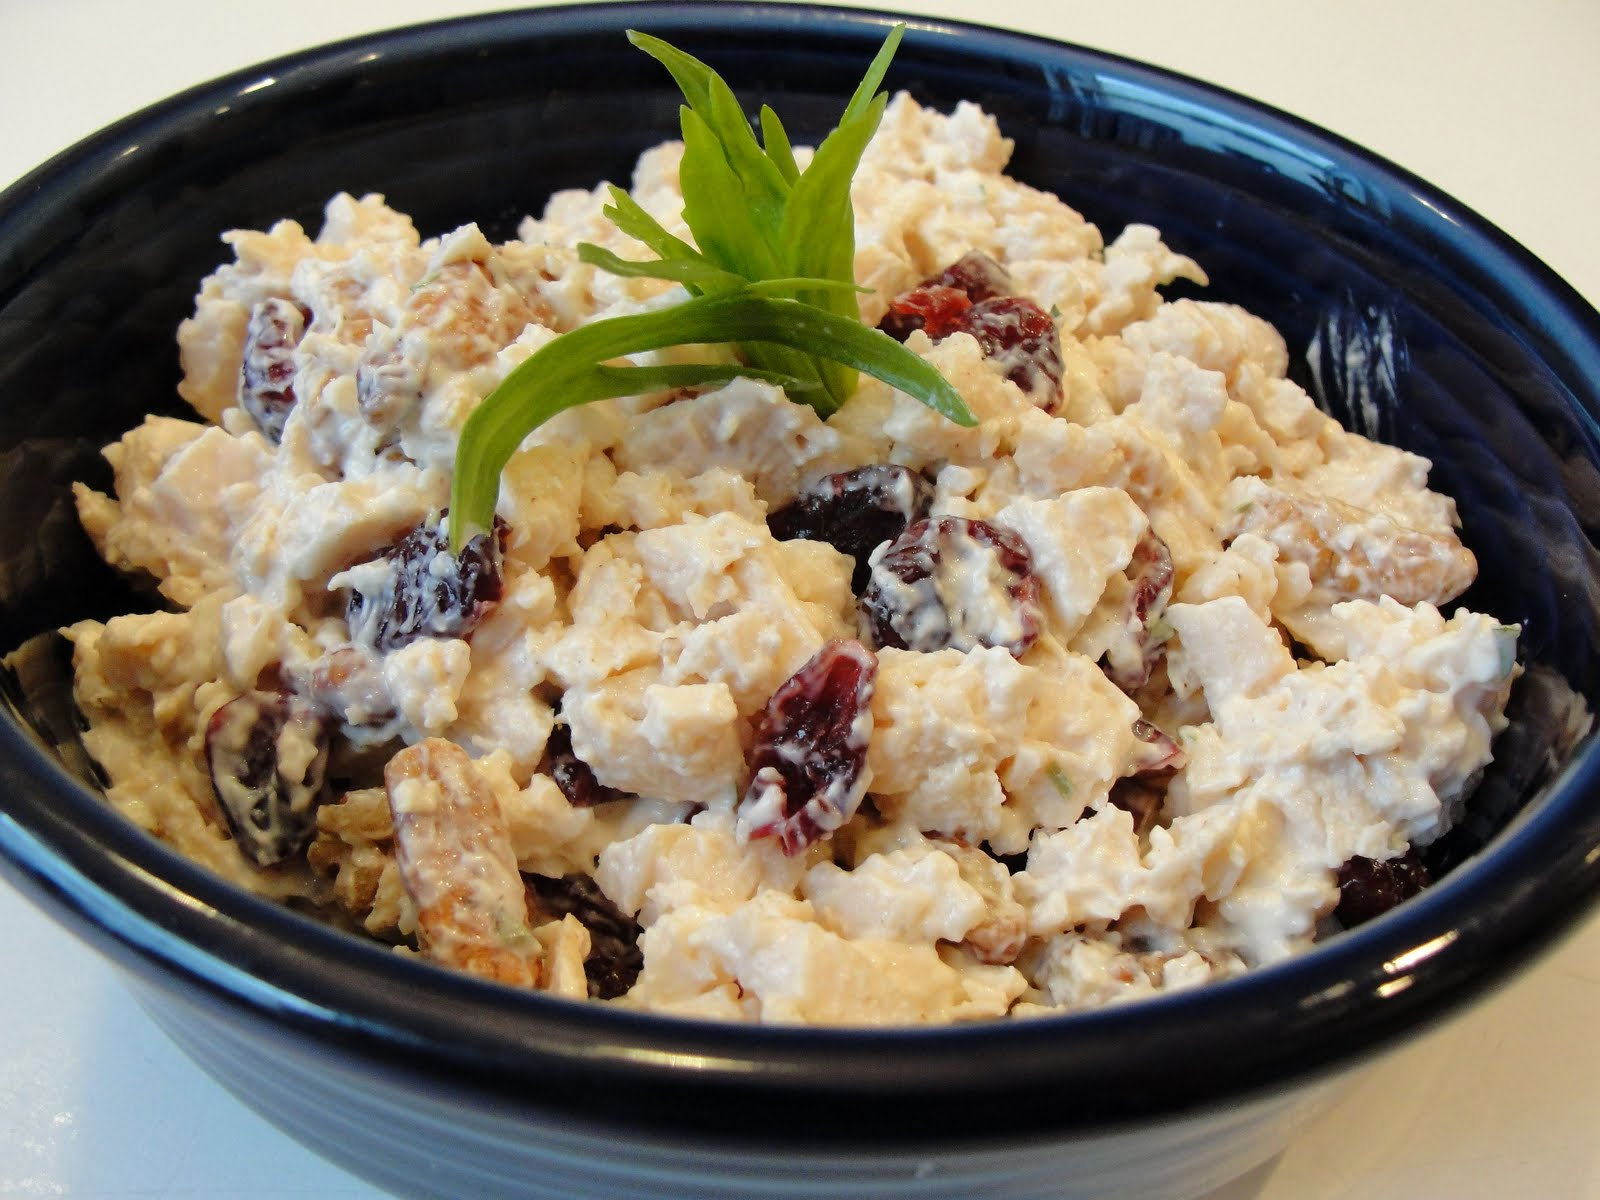 ... thyme to cook...: Chicken Salad with Tarragon, Pecans and Cranberries